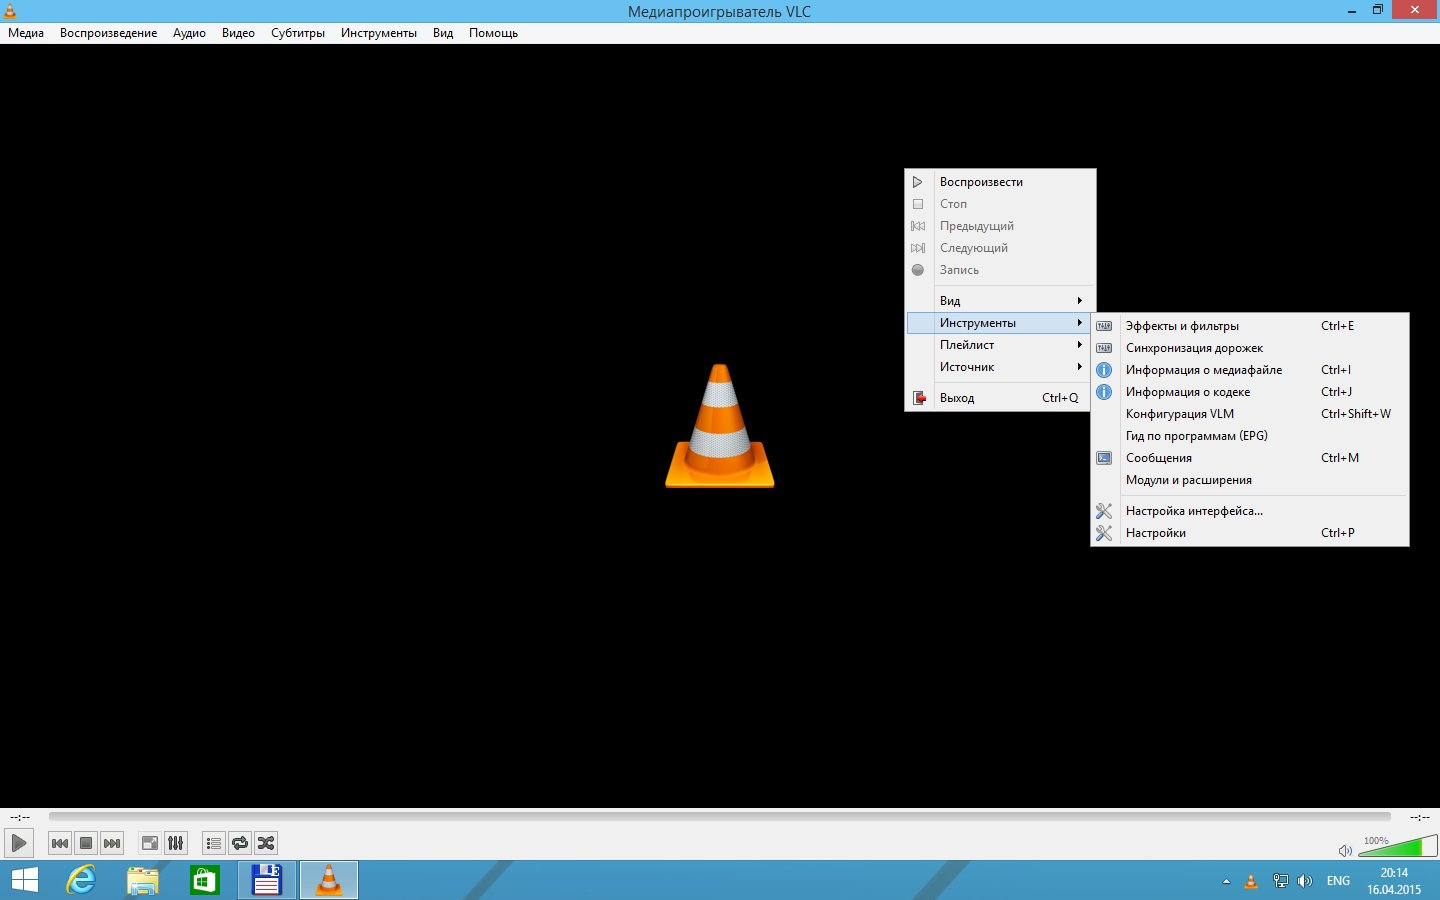 VLC media player  2.2.1 [x86] [Open source]